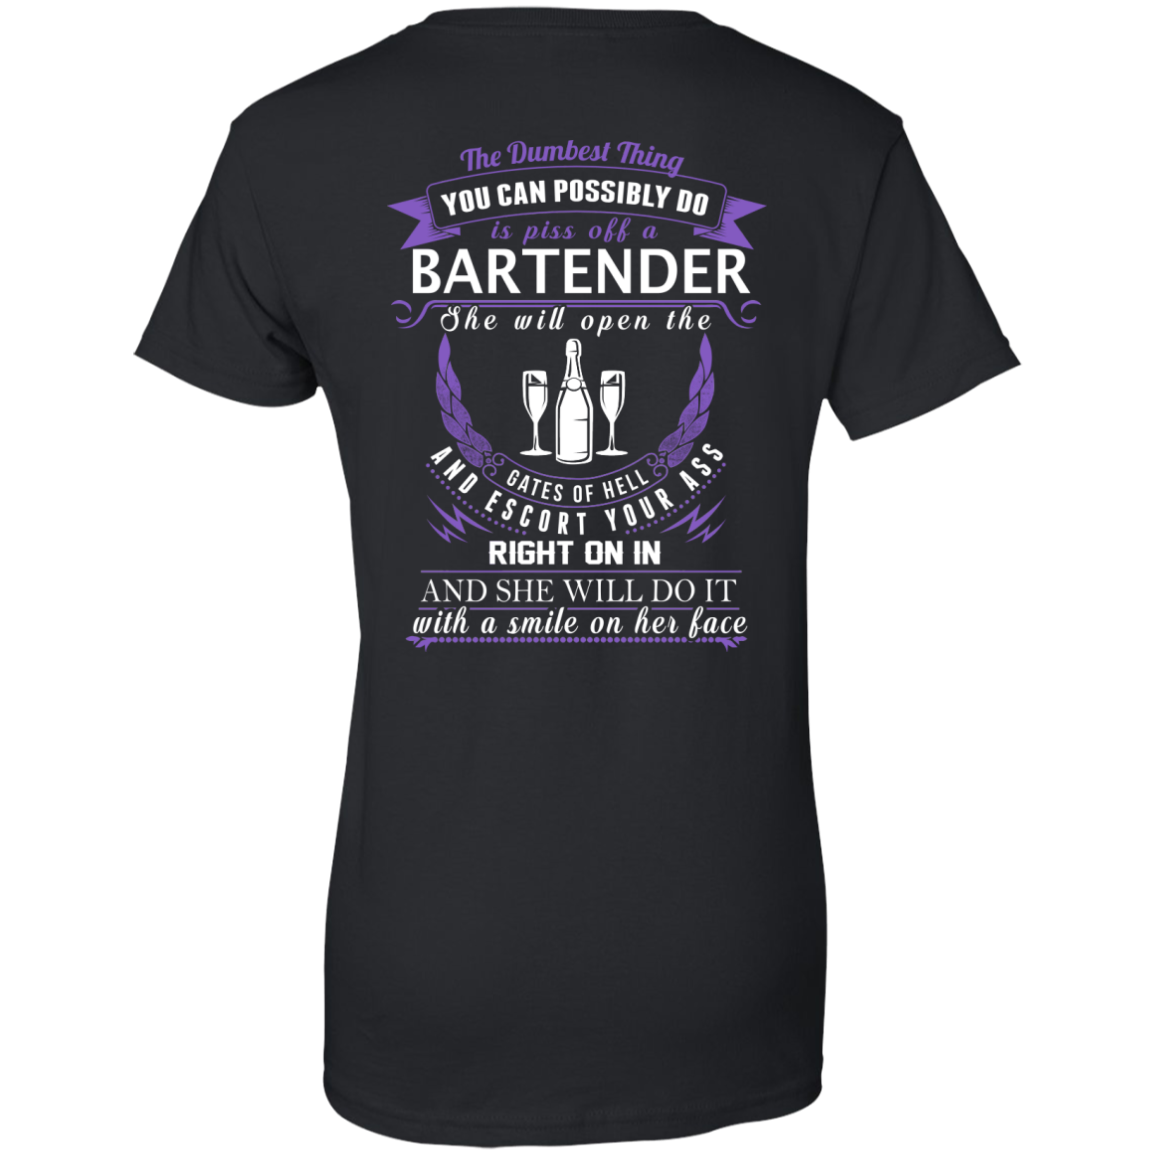 The Dumbest Thing...Bartender...With a smile on her face - TheSunCat.com - 11